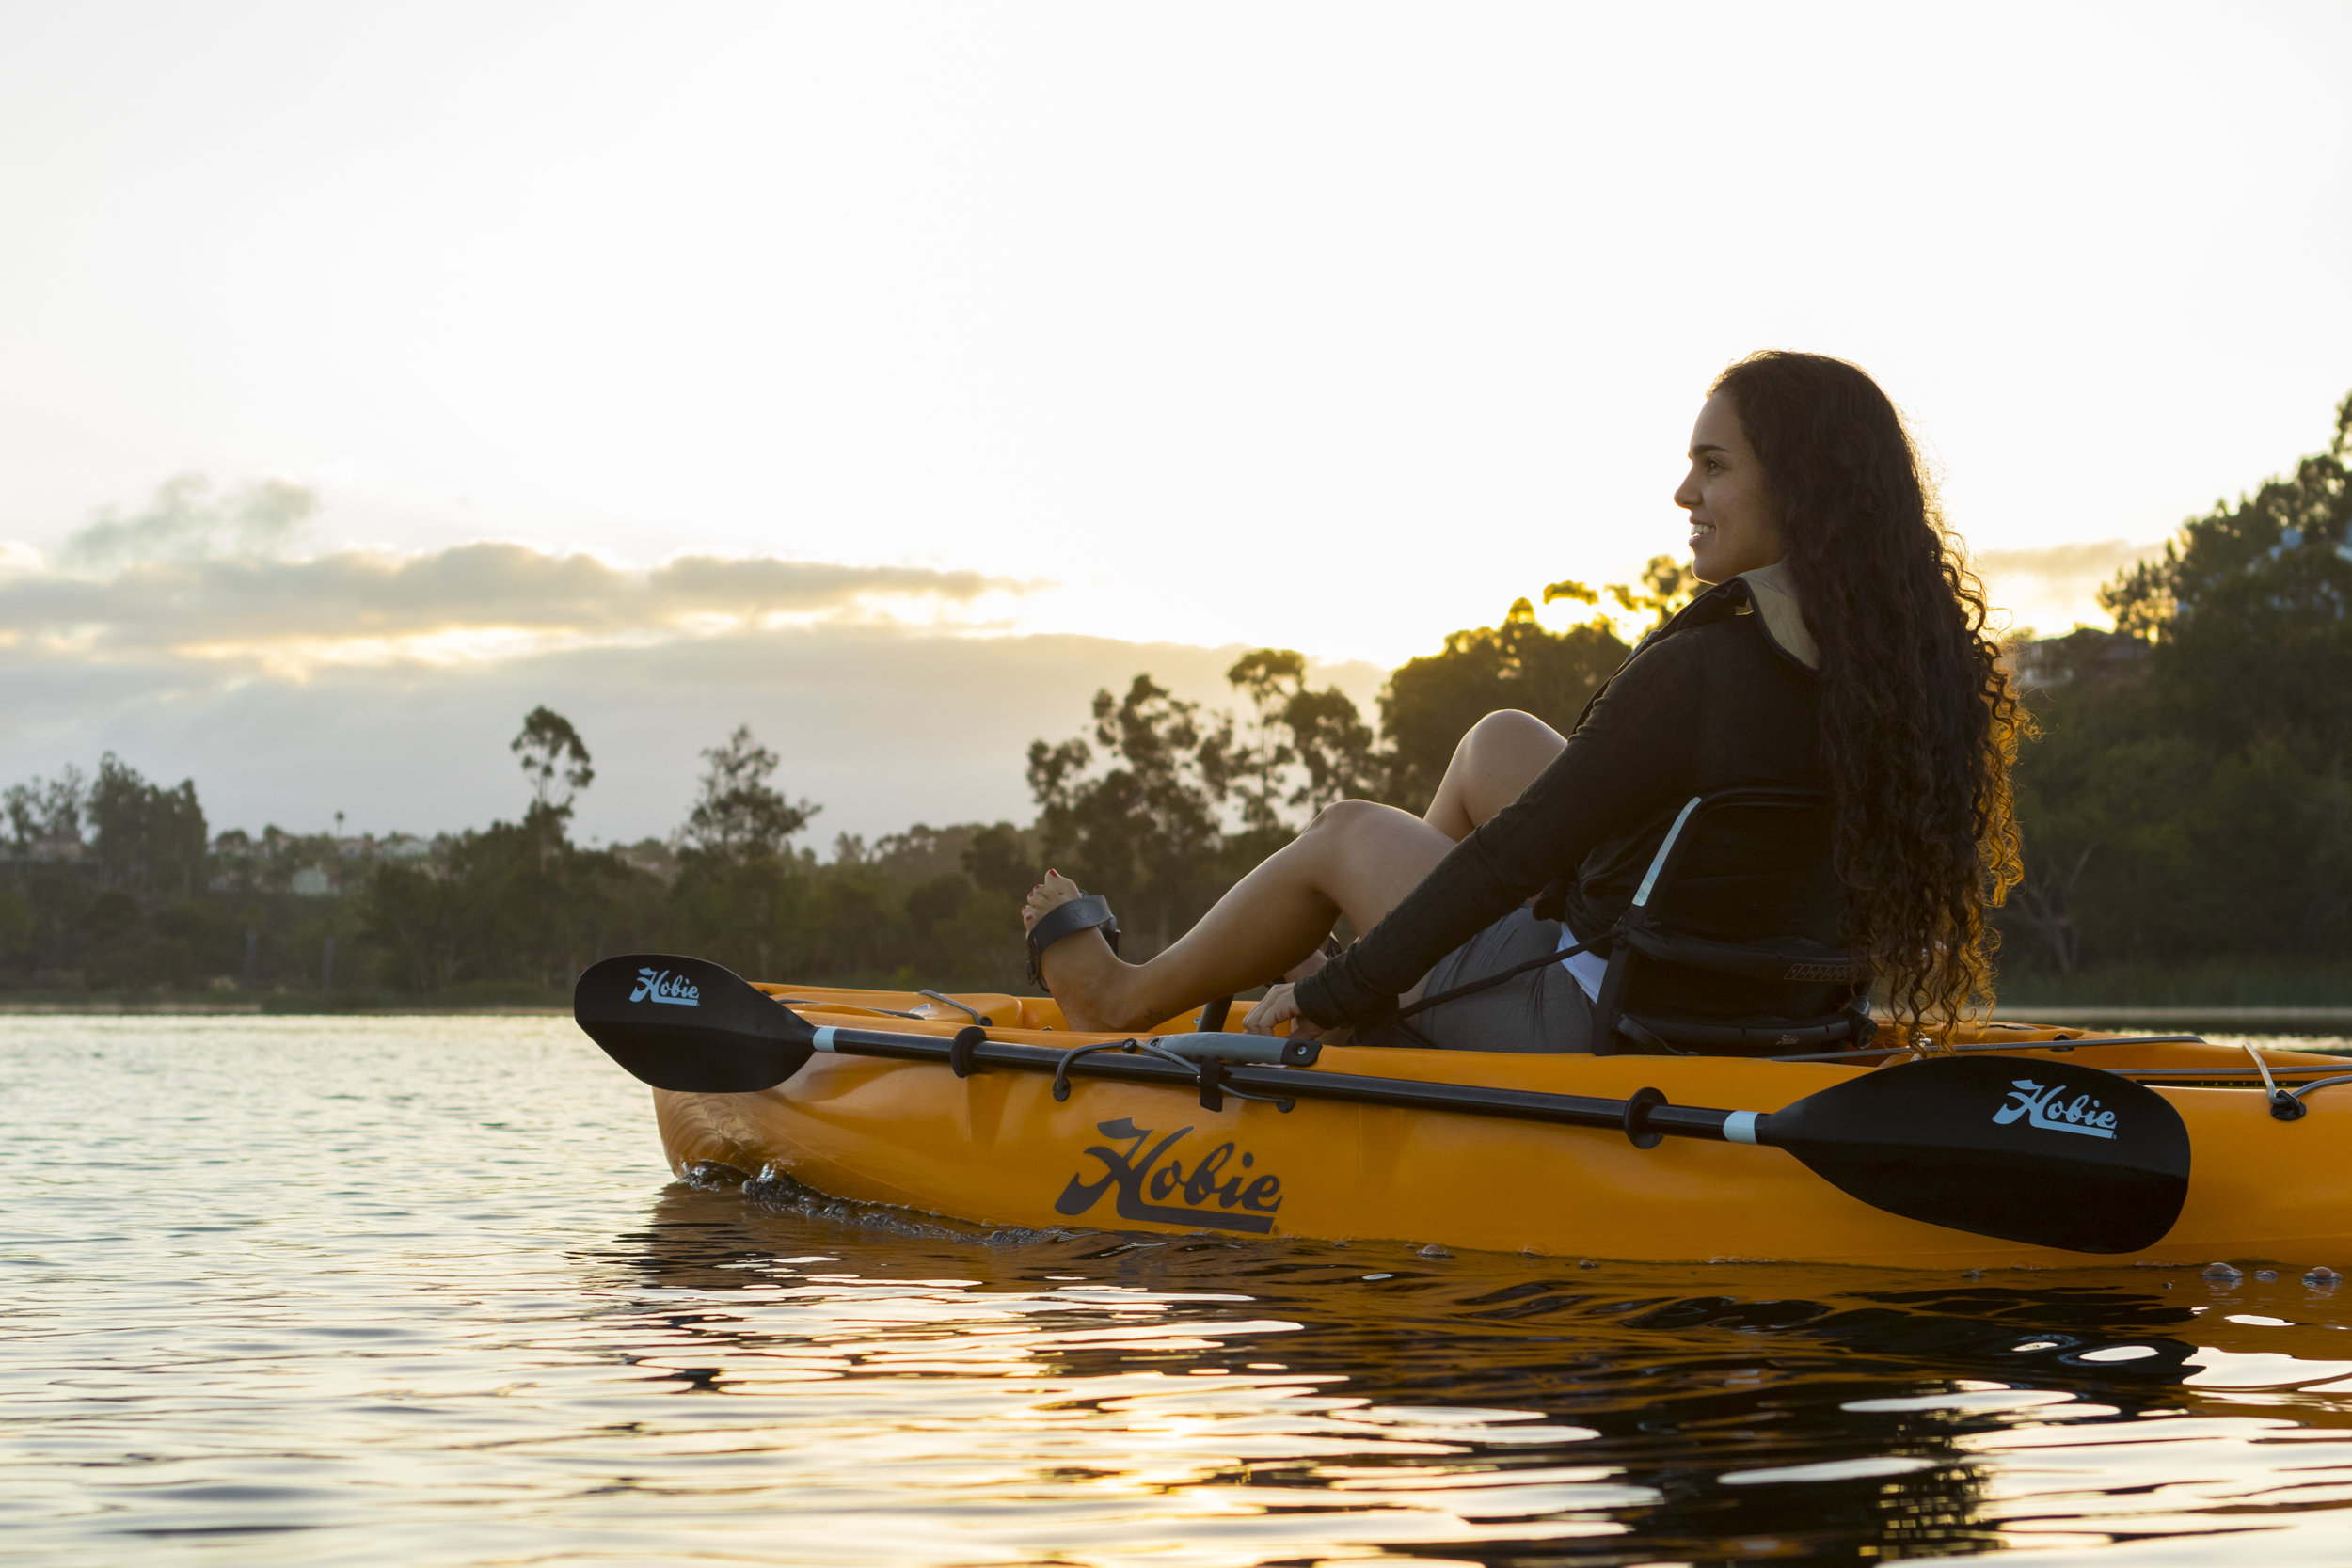 Sport_action_lake_papaya_female_longhair.jpg